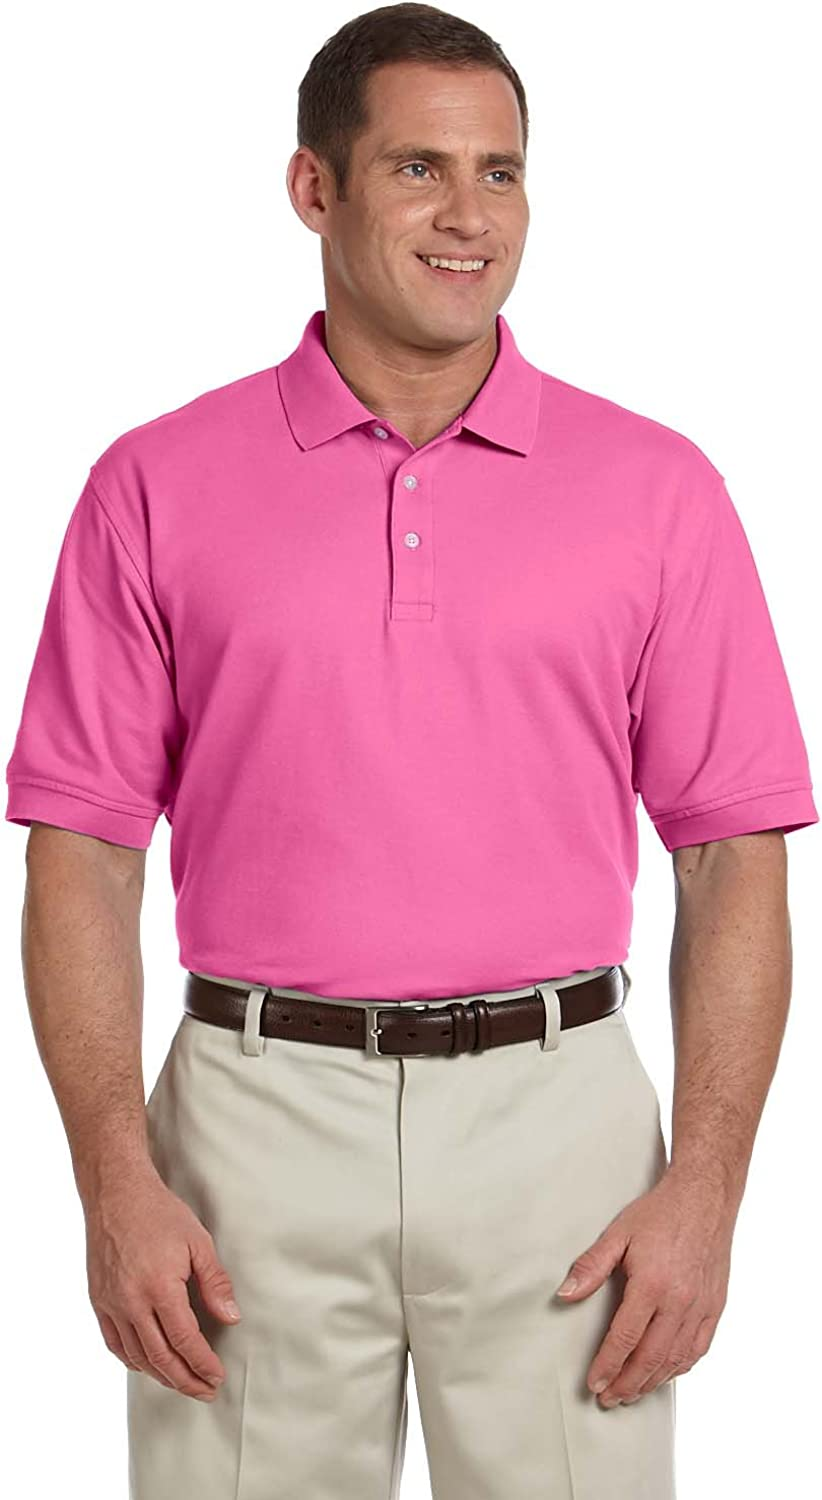 - Devon Devon Devon & Jones Men's Pima Pique Short Sleeve Polo, Charity Pink 575259